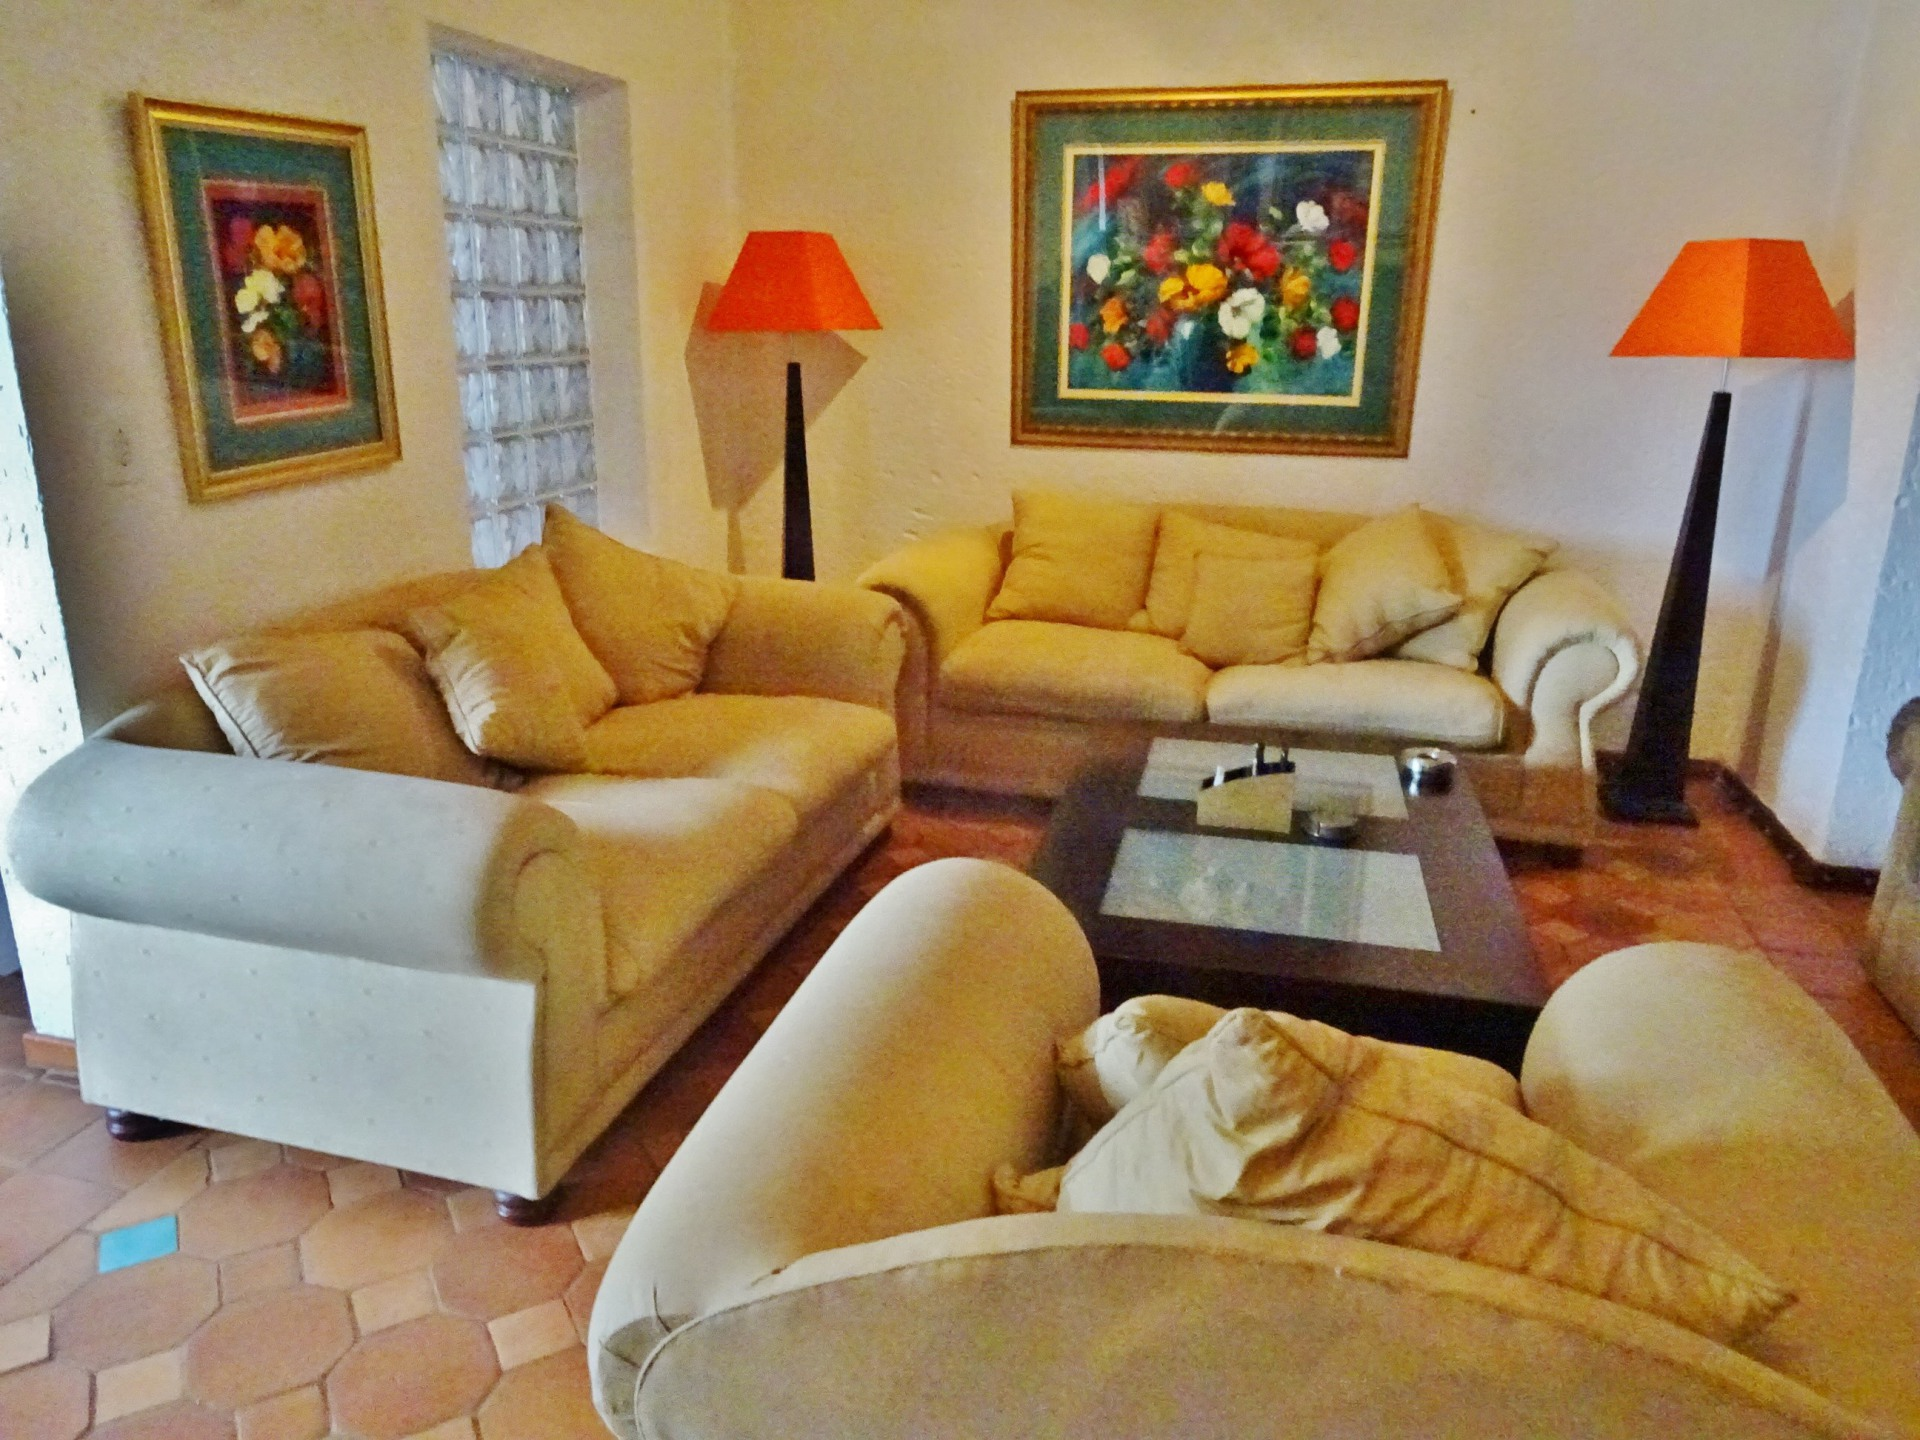 Open plan lounge with 6 seater lounge suite & sleeper couch, flat screen TV, air conditioner & romantic lamps - Holiday accommodation Hartbeespoortription